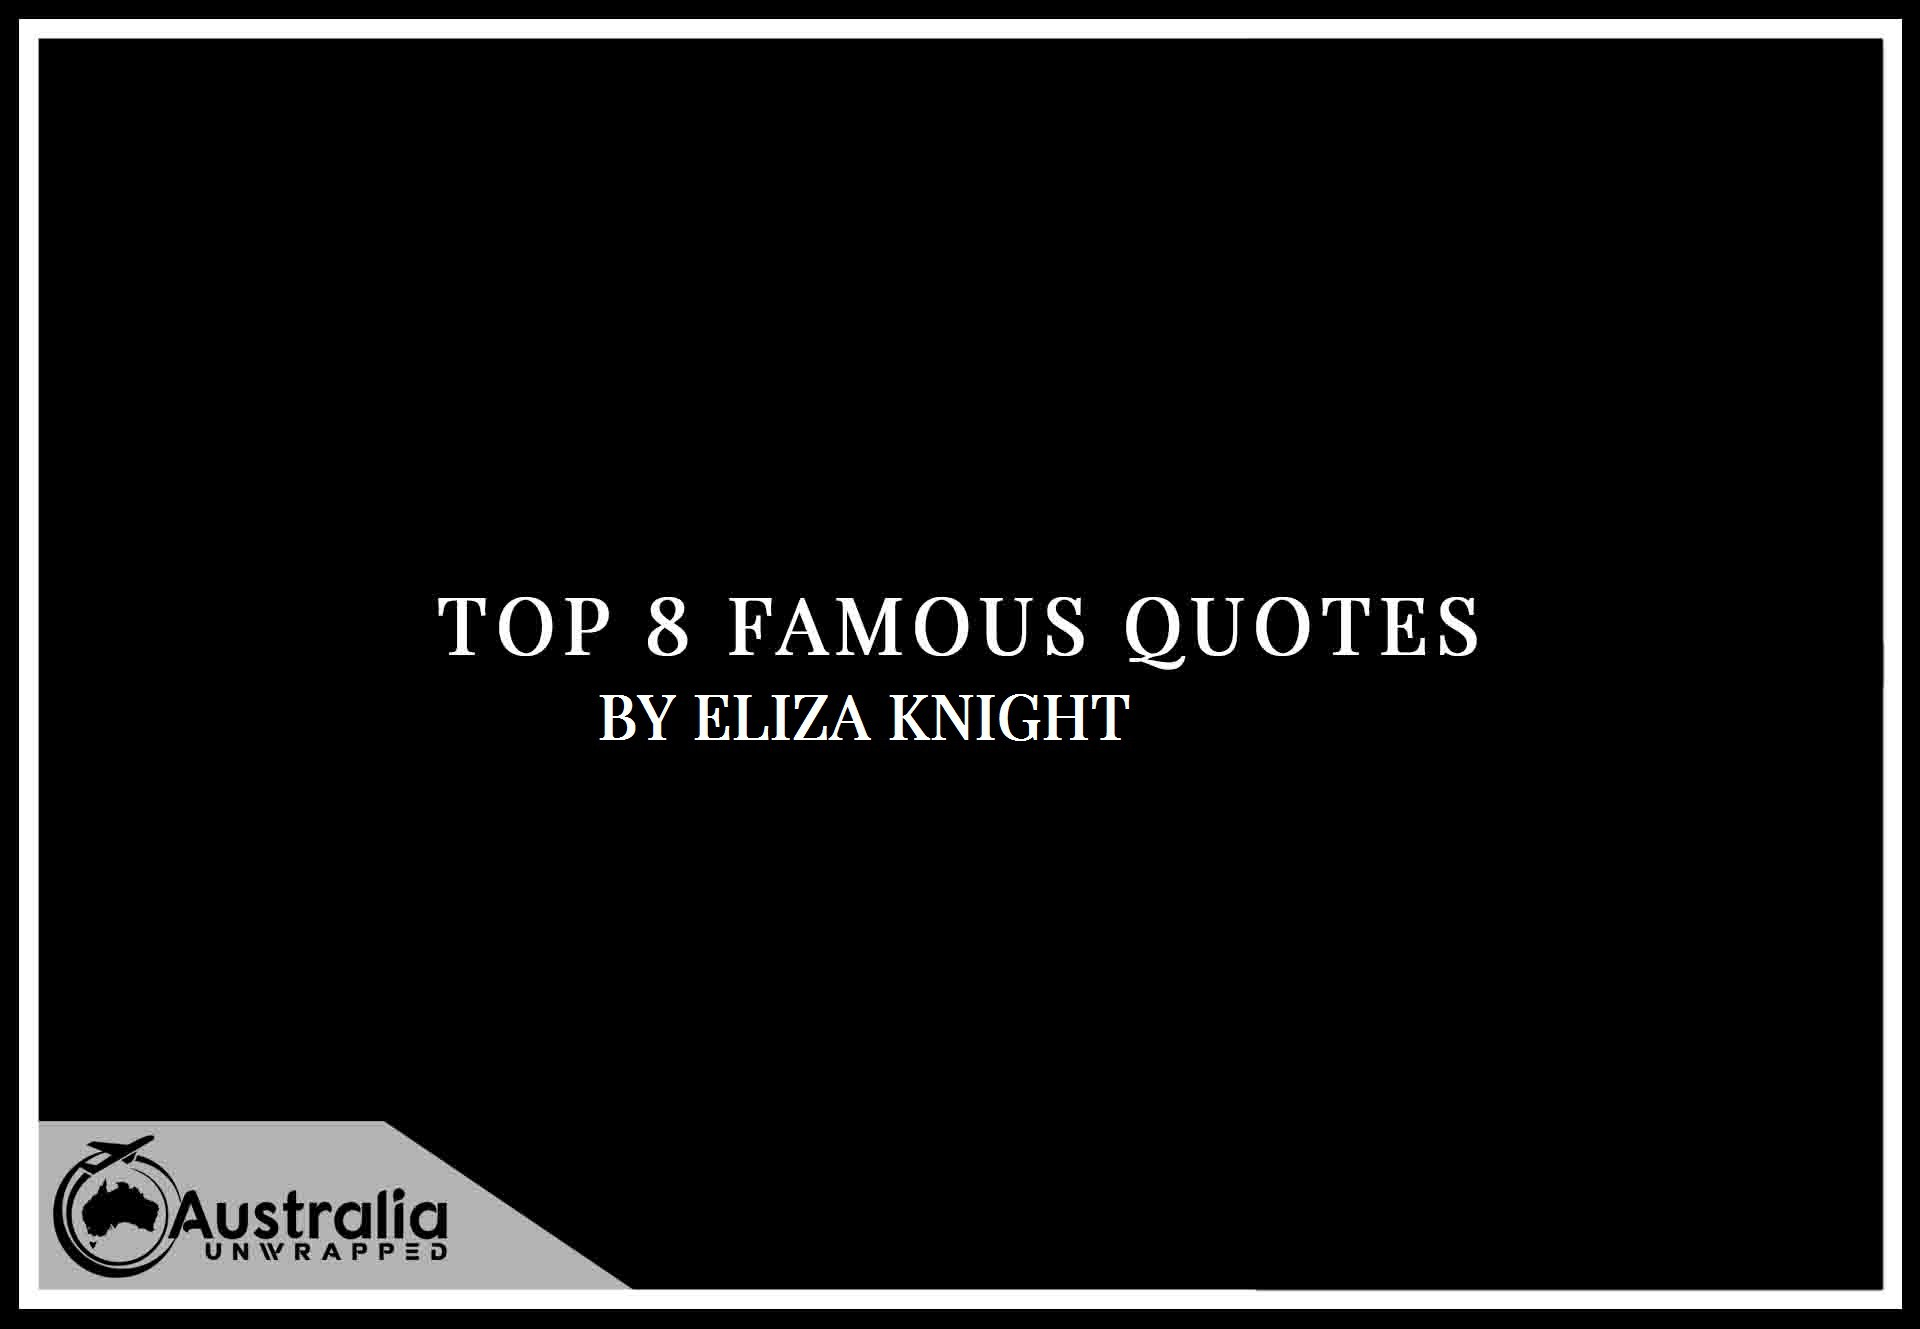 Eliza Knight's Top 8 Popular and Famous Quotes